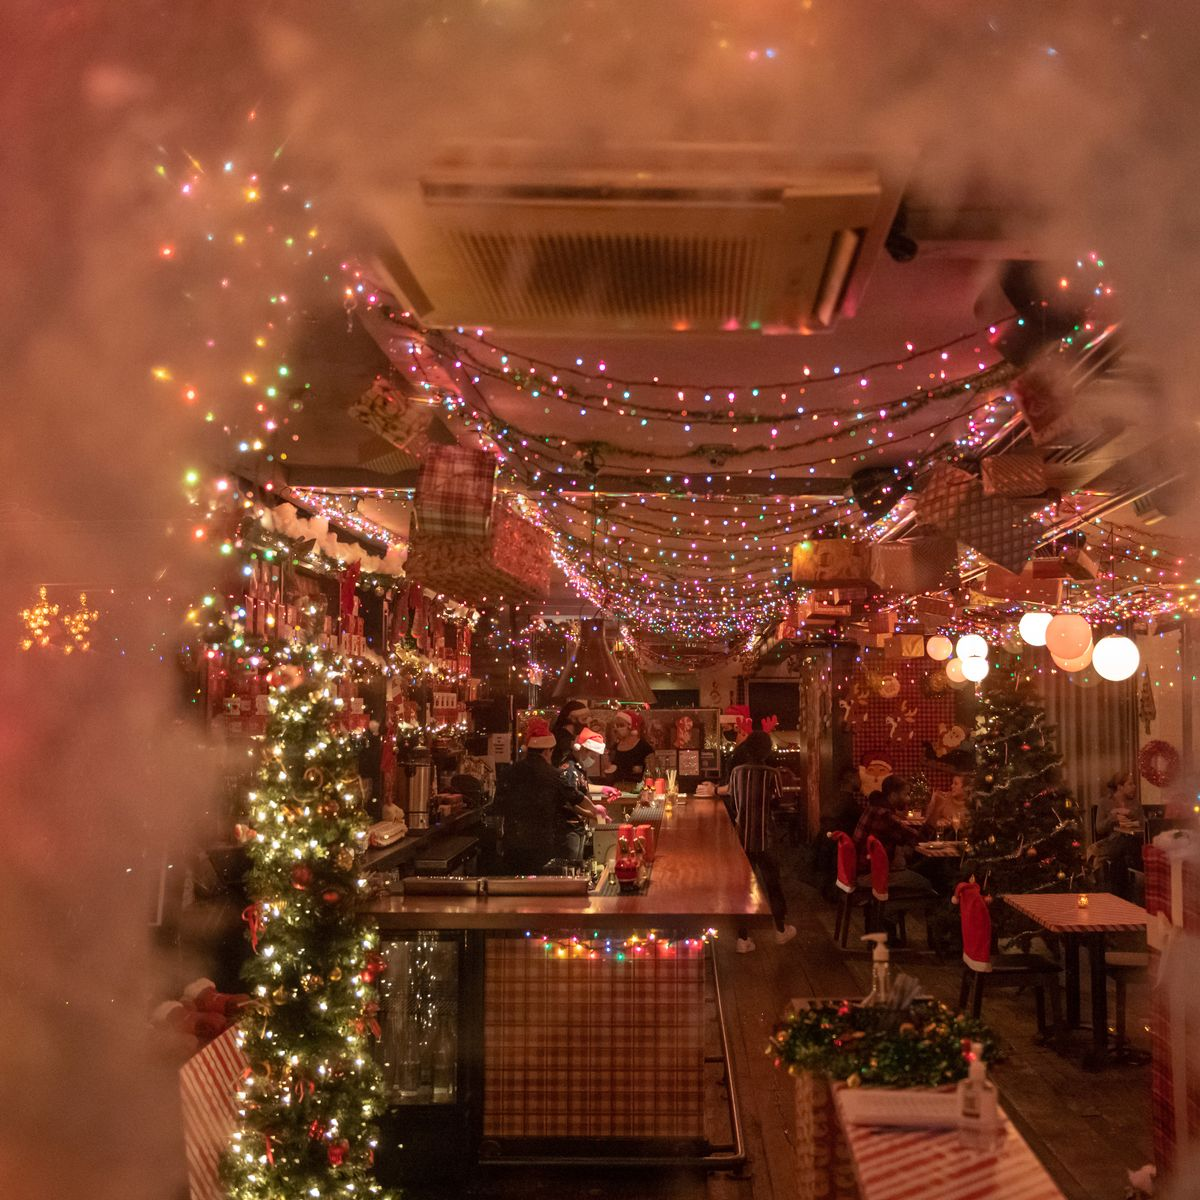 Indoor Dining Could End As NYC Restaurant Closings Increase